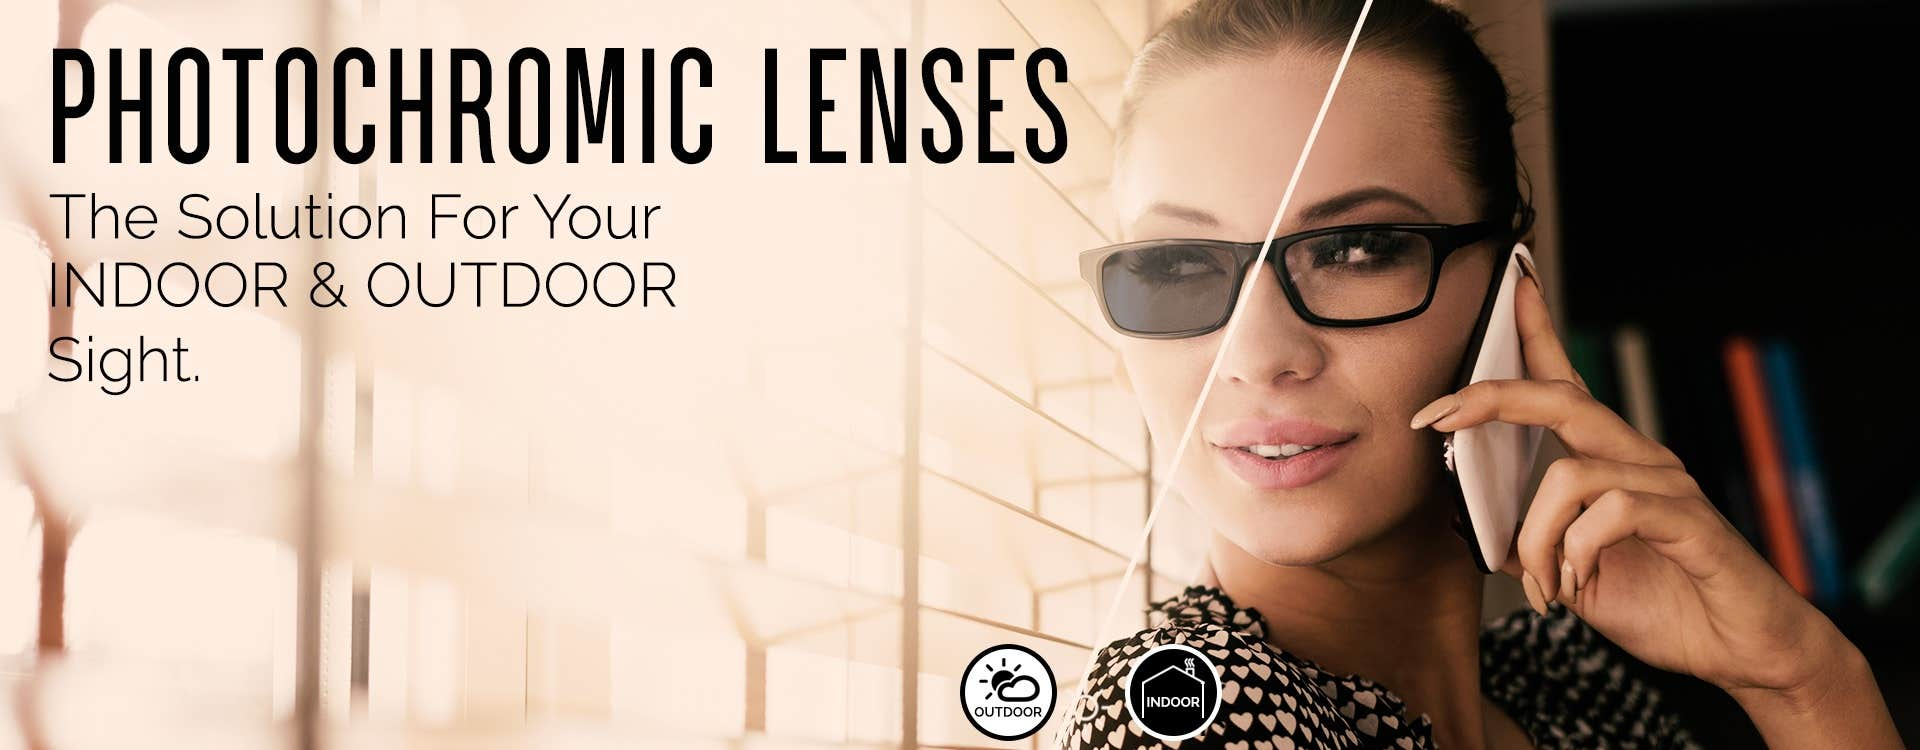 Photochromic Lenses